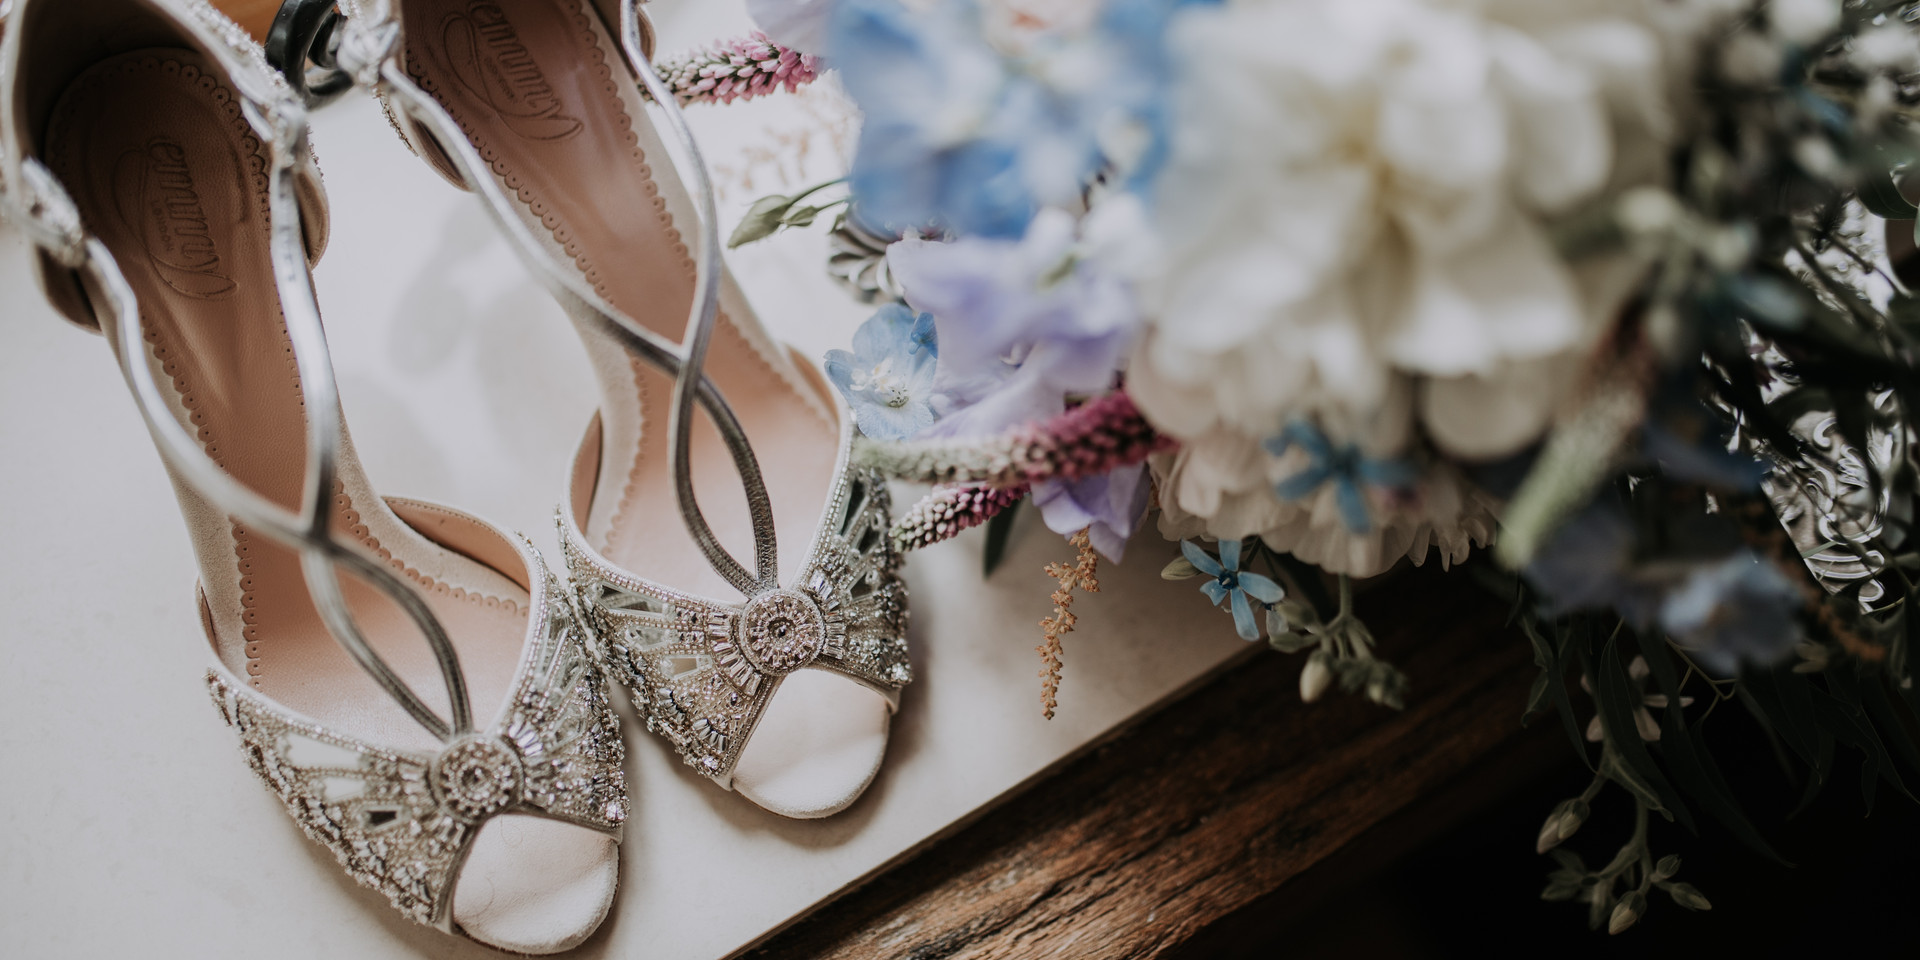 Vintage Bridal Shoes and Bouquet Wedding morning